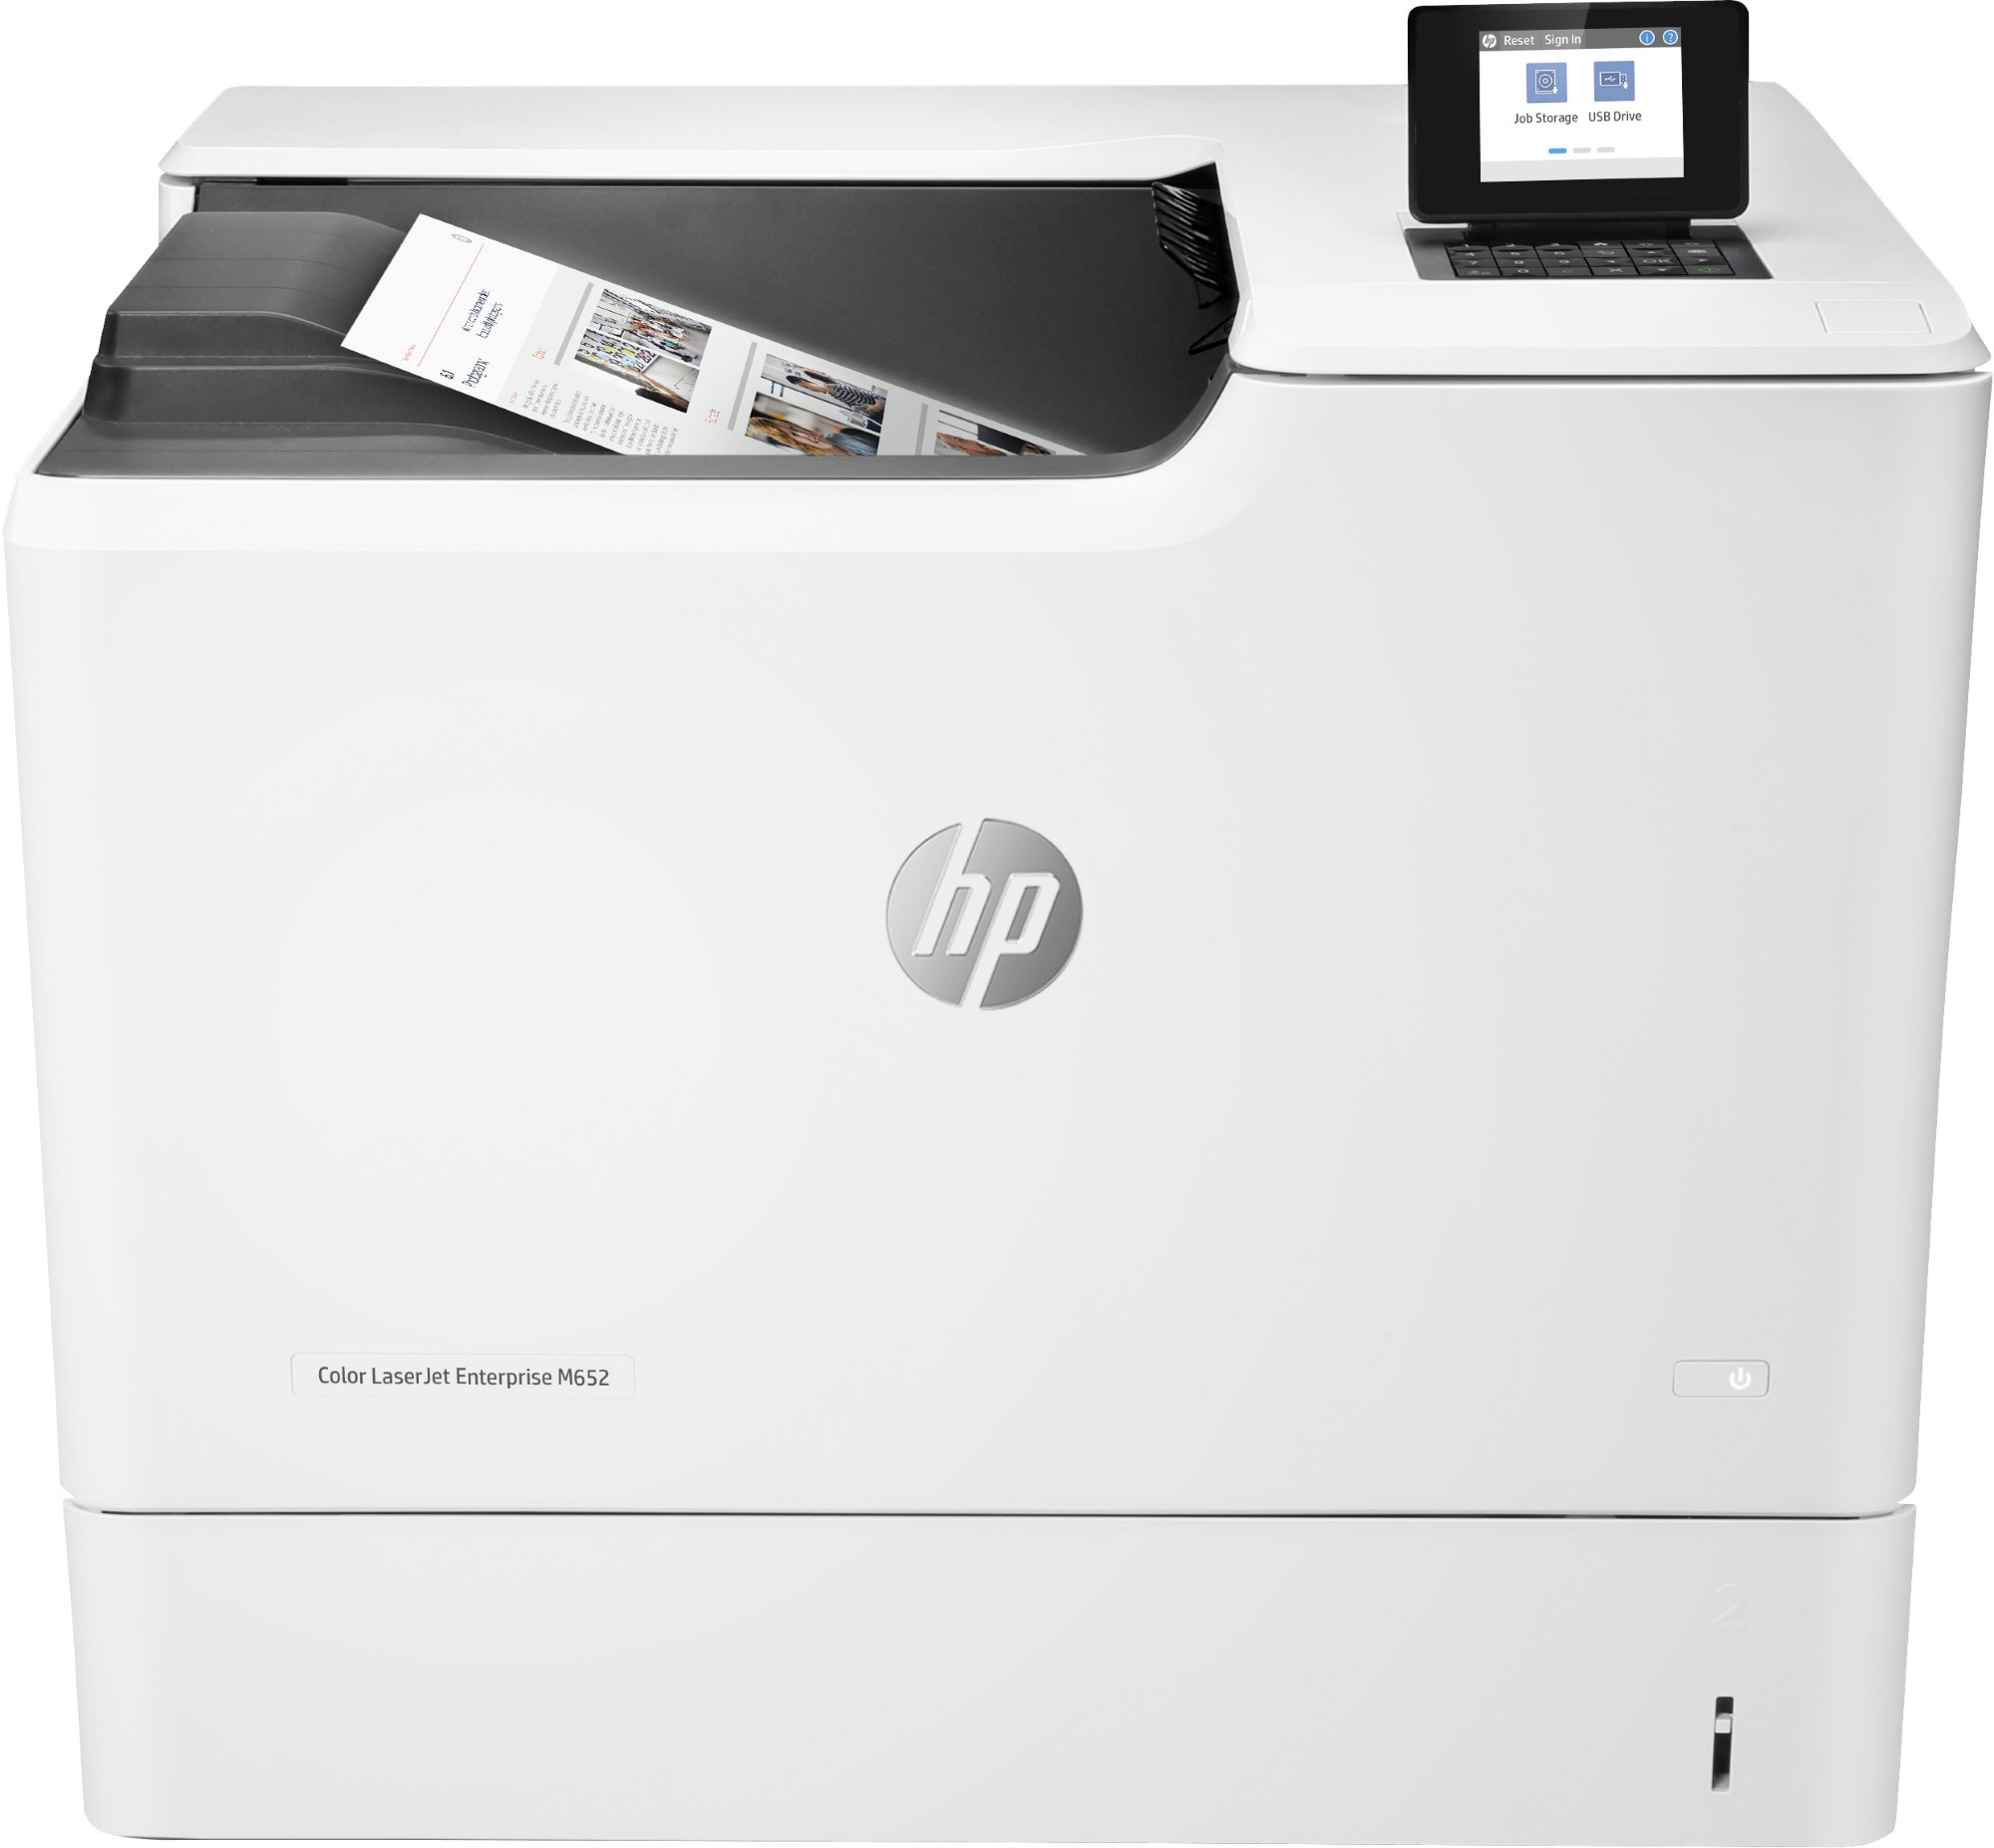 HP J7Z98A#B19 LASERJET ENTERPRISE M652N COLOUR 1200 X 1200DPI A4 WI-FI